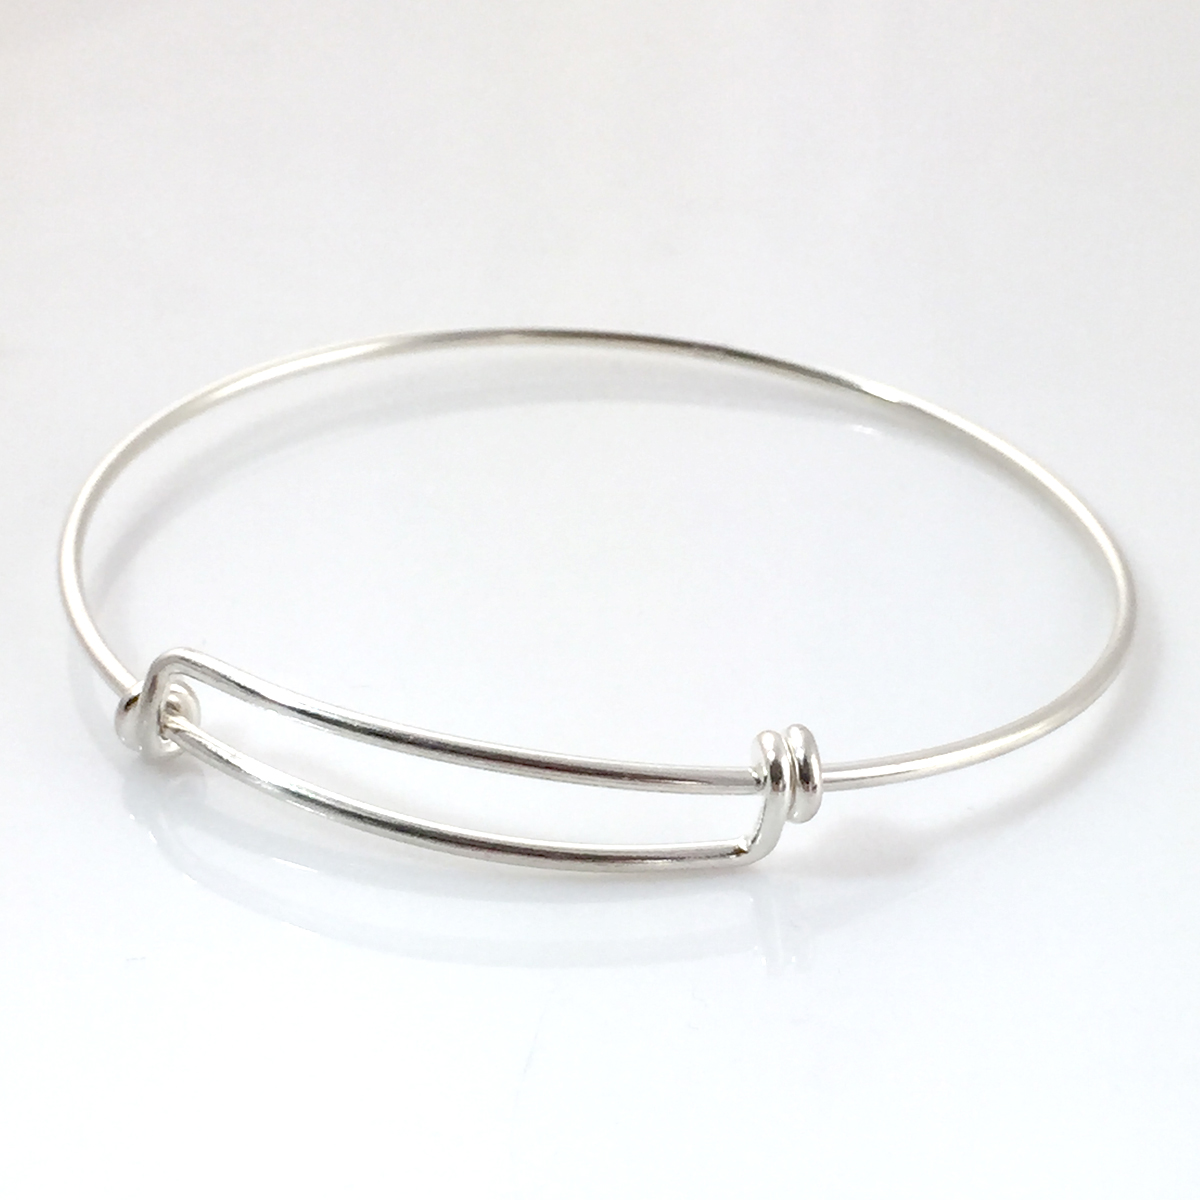 Empty sterling silver bangle